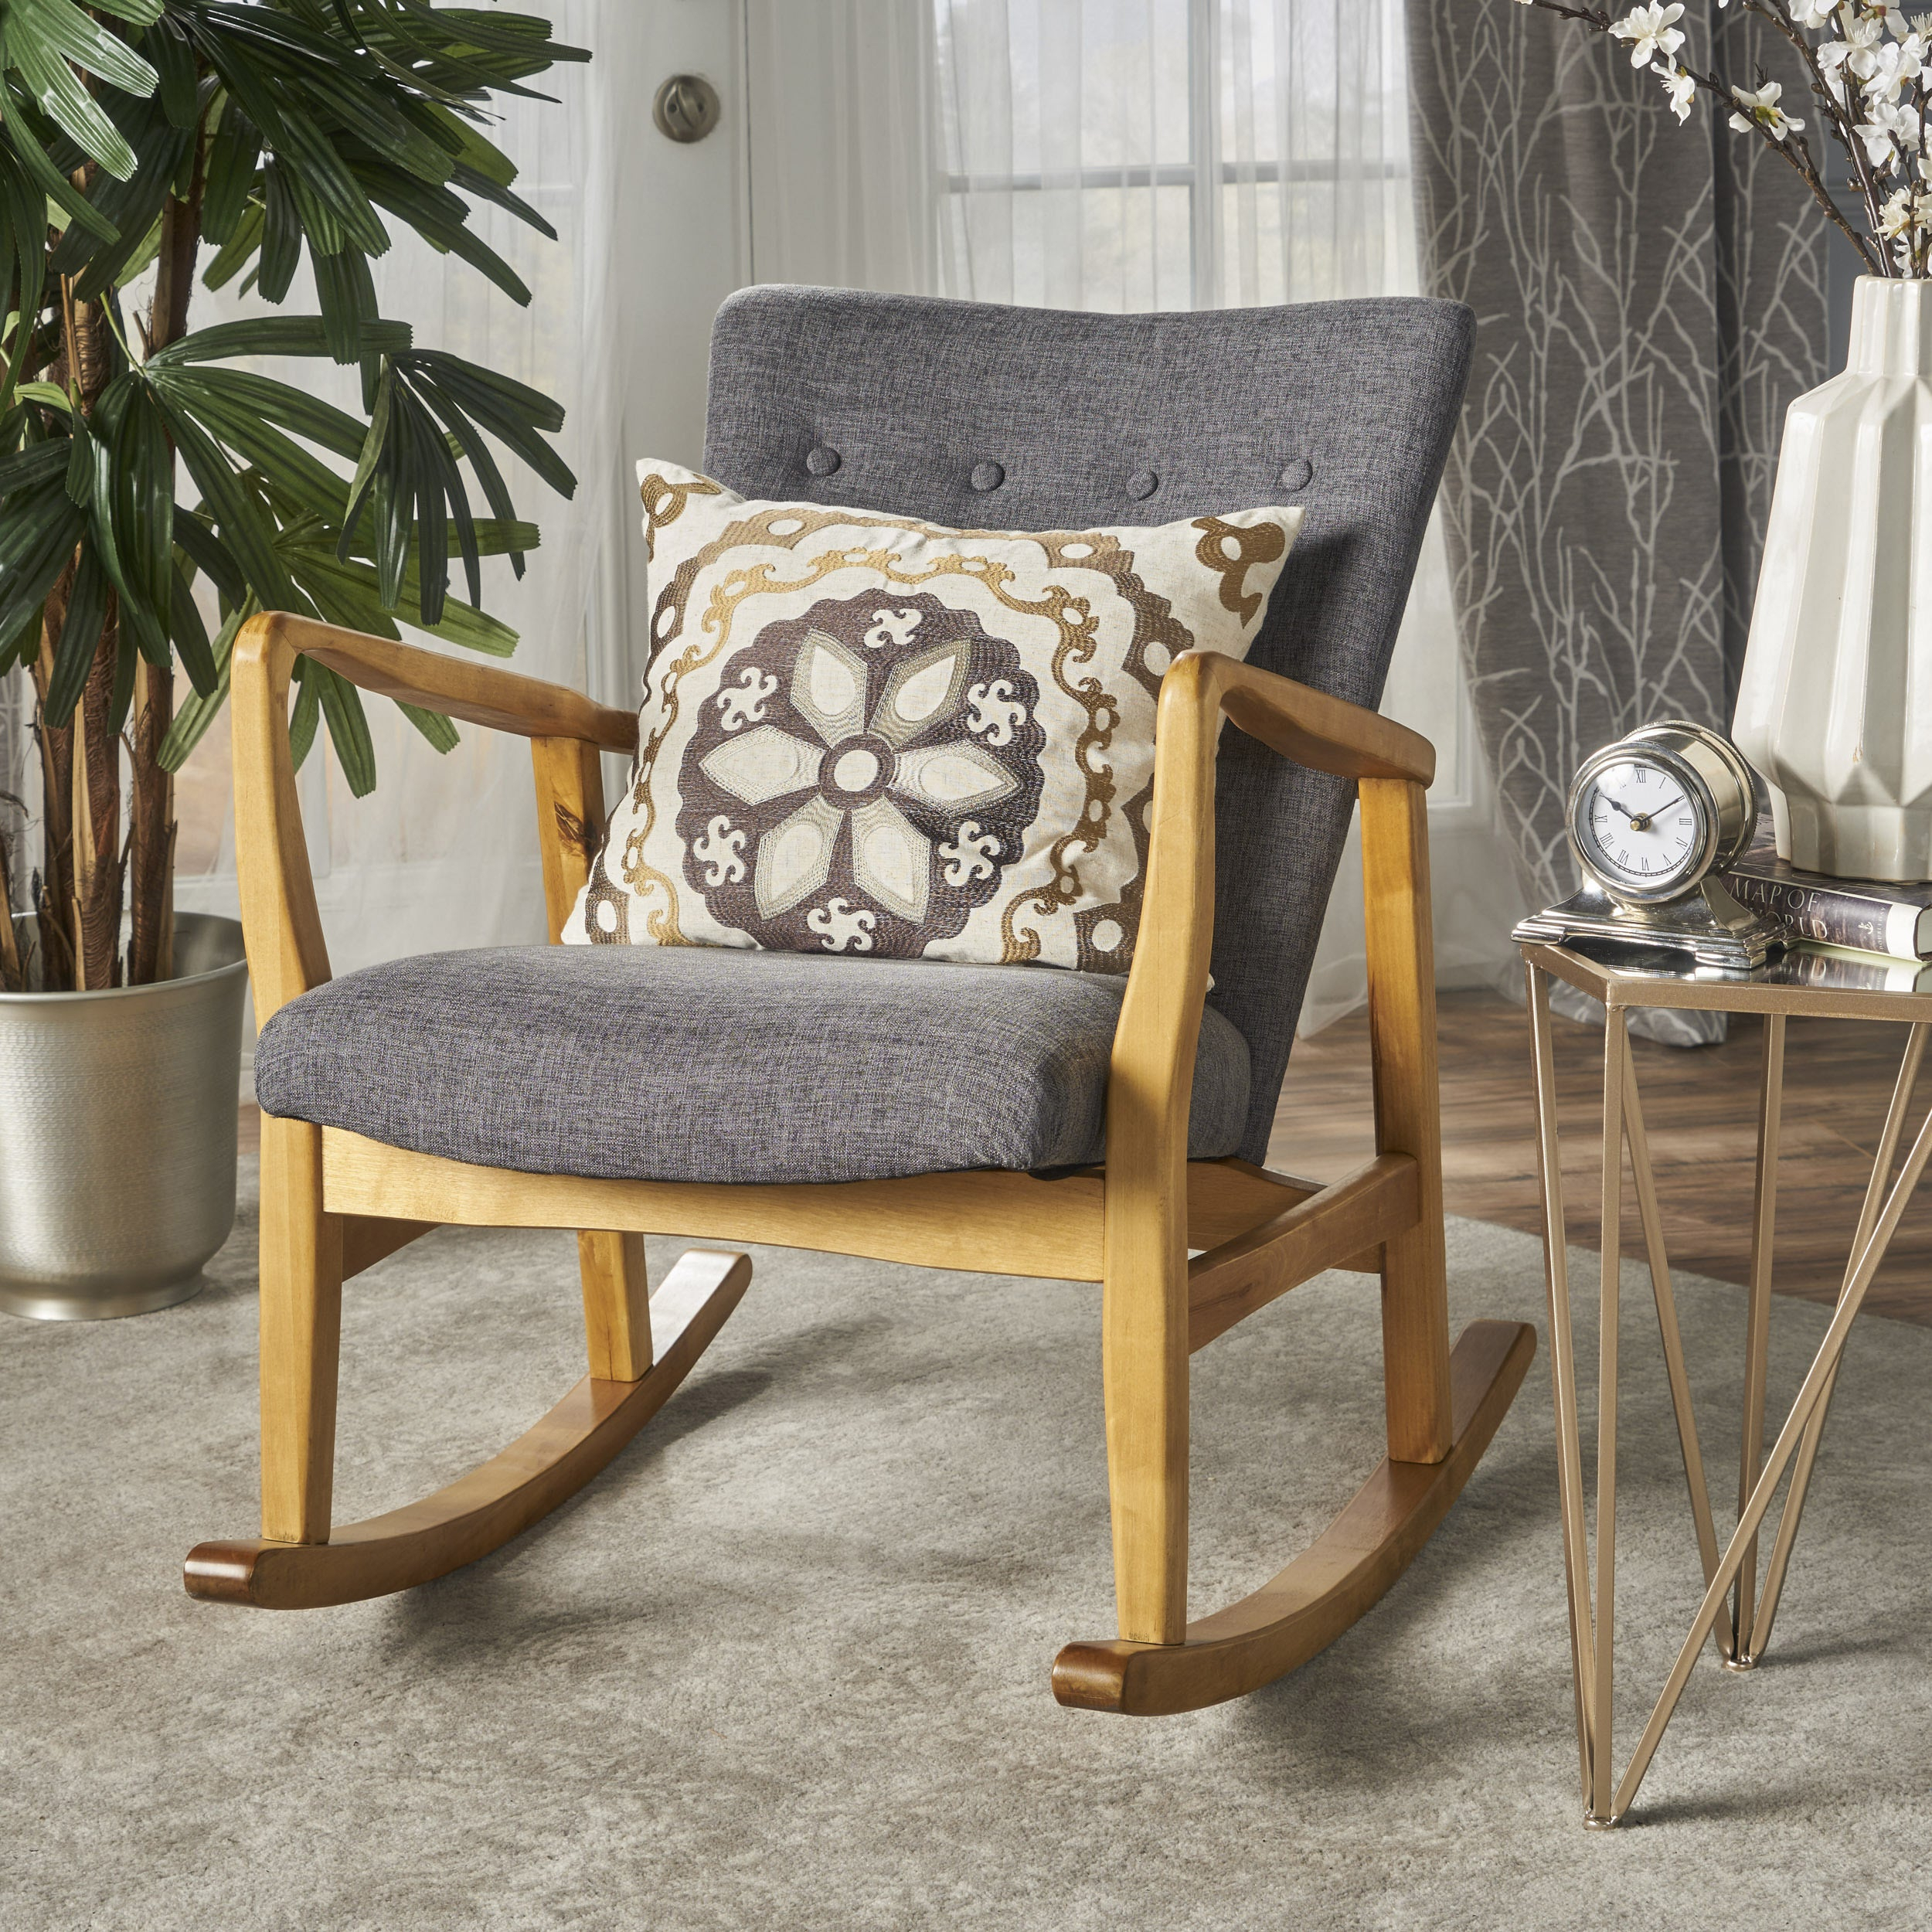 Inspiration about Rocking Chairs, Modern & Contemporary Living Room Chairs With Regard To Faux Leather Upholstered Wooden Rocking Chairs With Looped Arms, Brown (#15 of 20)